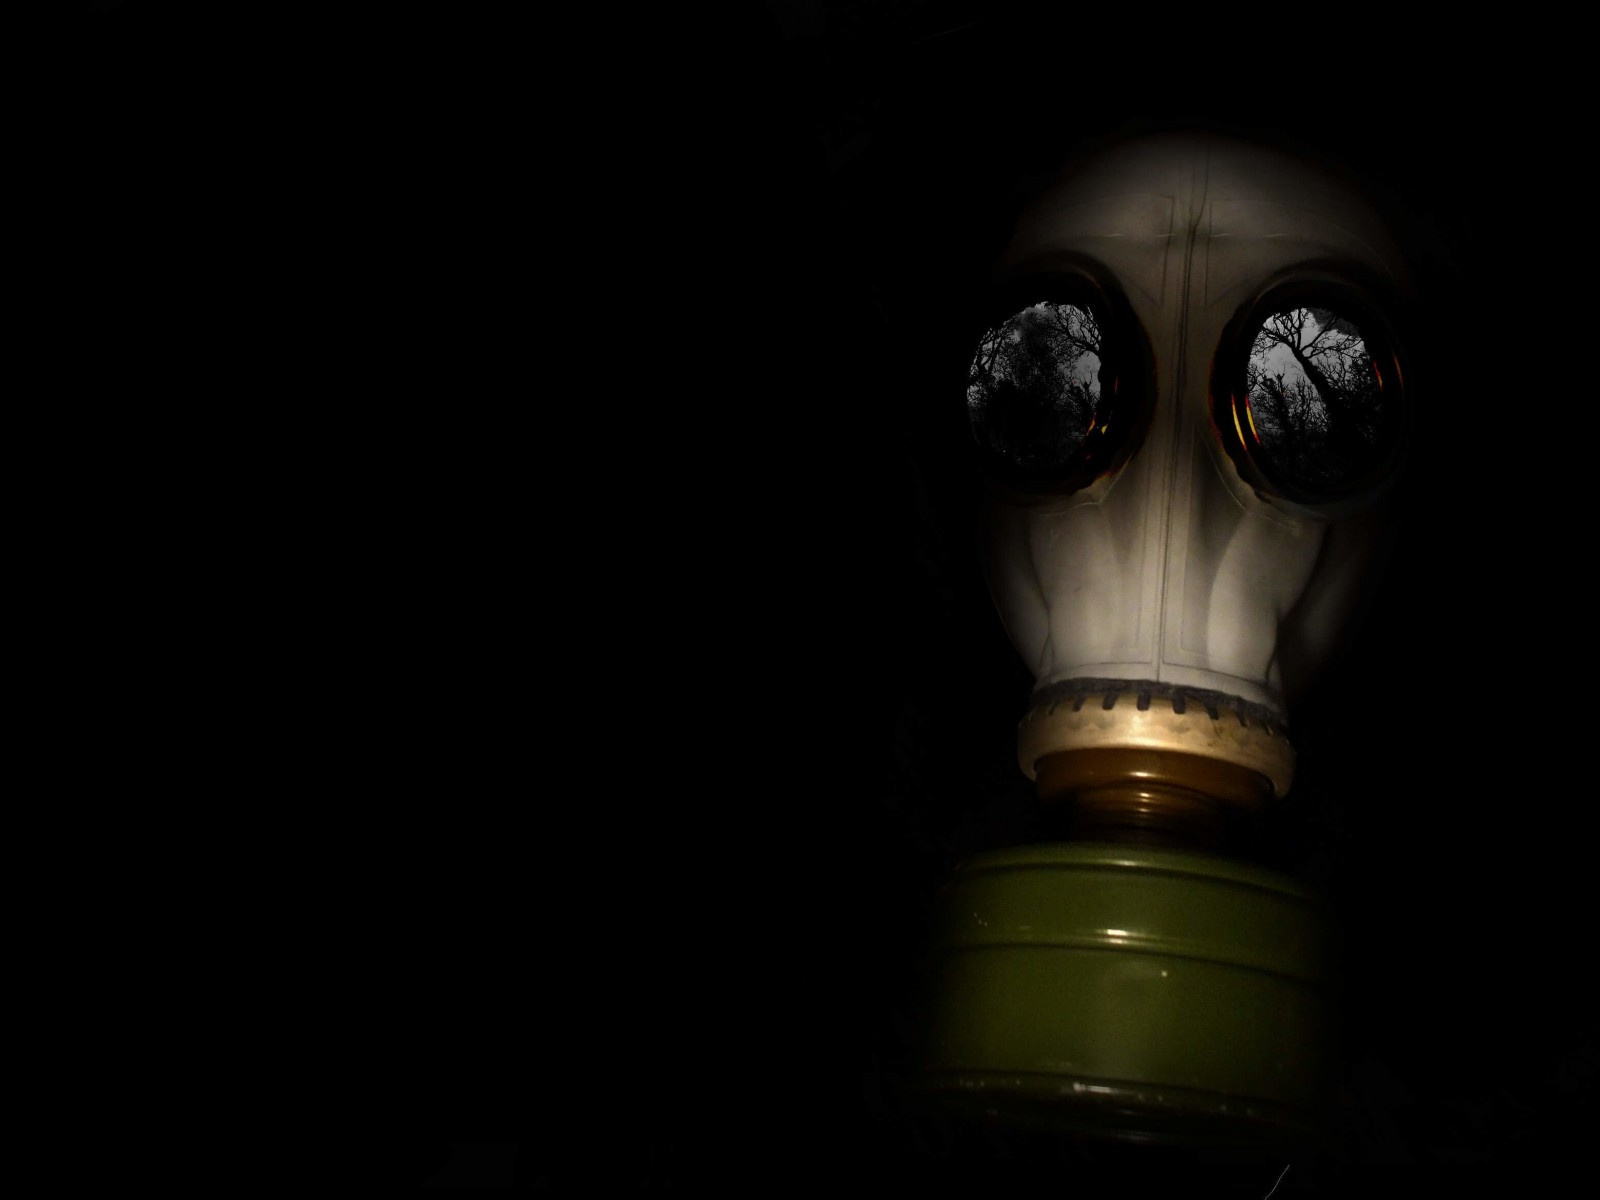 WWII Gas Mask Wallpaper for Desktop 1600x1200